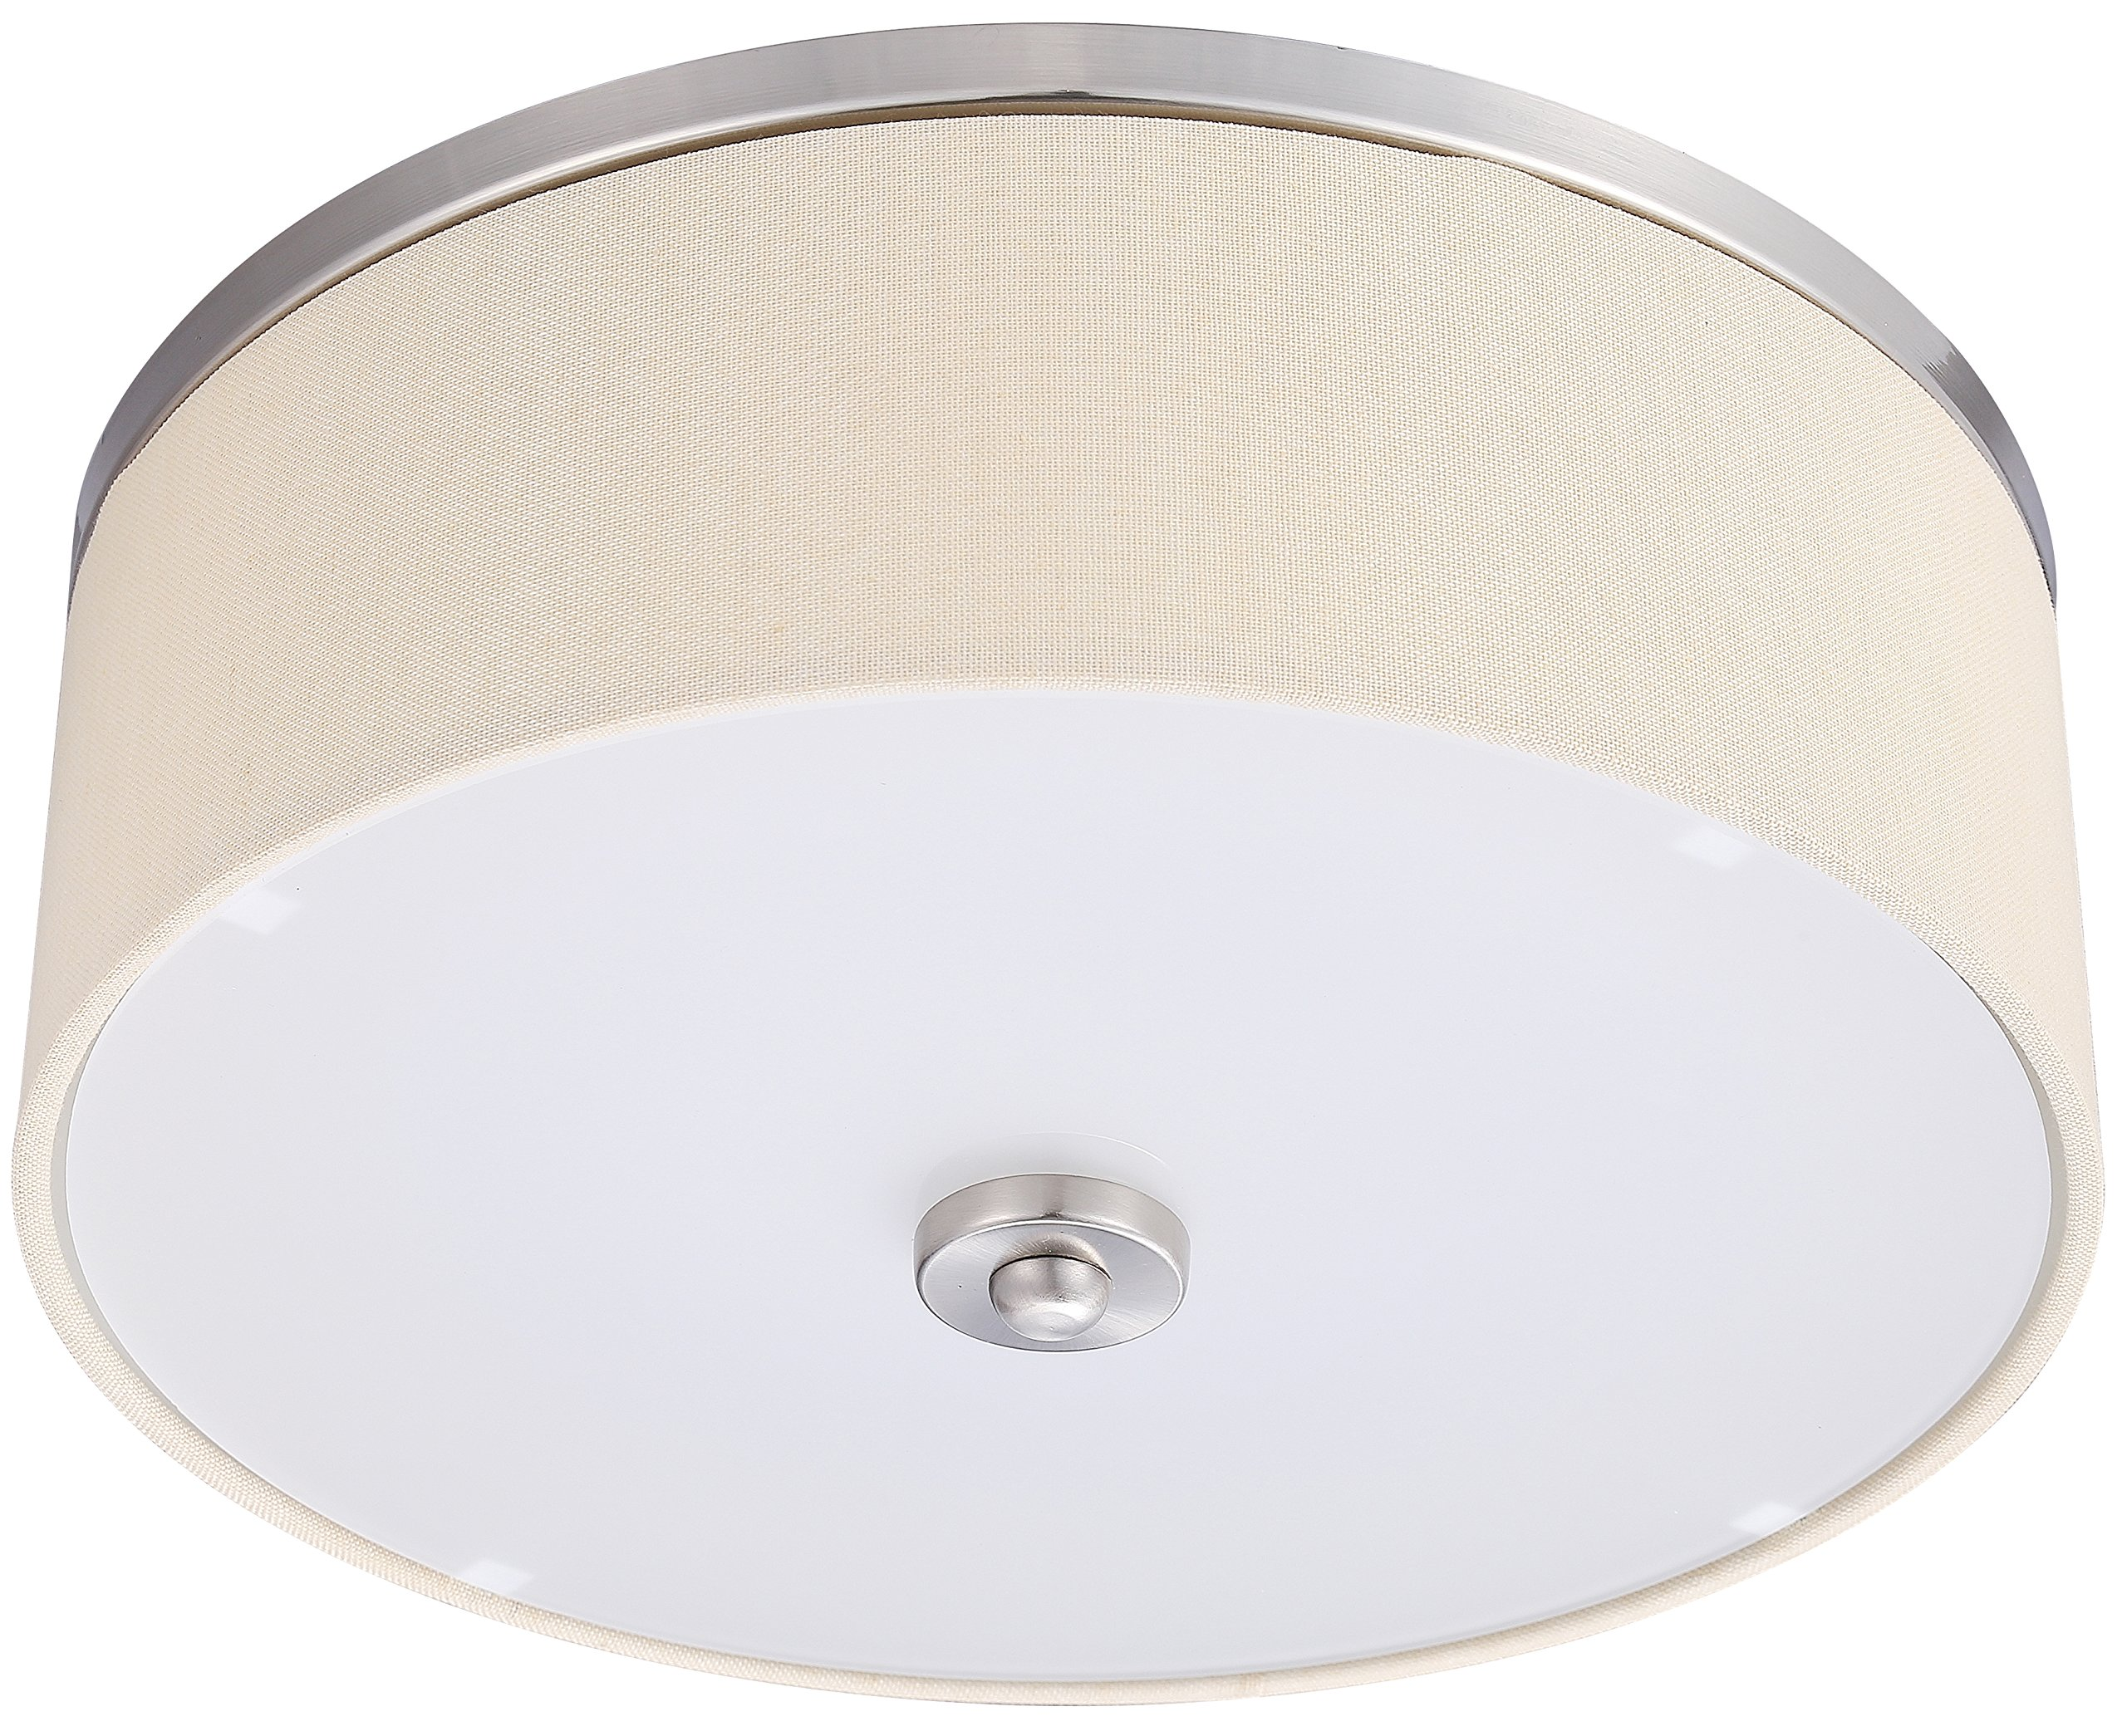 LB72154 LED Flush Mount Fabric Light, 17-Inch Brushed Nickel with Bisque Drum Shade, White Lens, 4000K Dimmable, 1600 Lumens, Ceiling Fixture